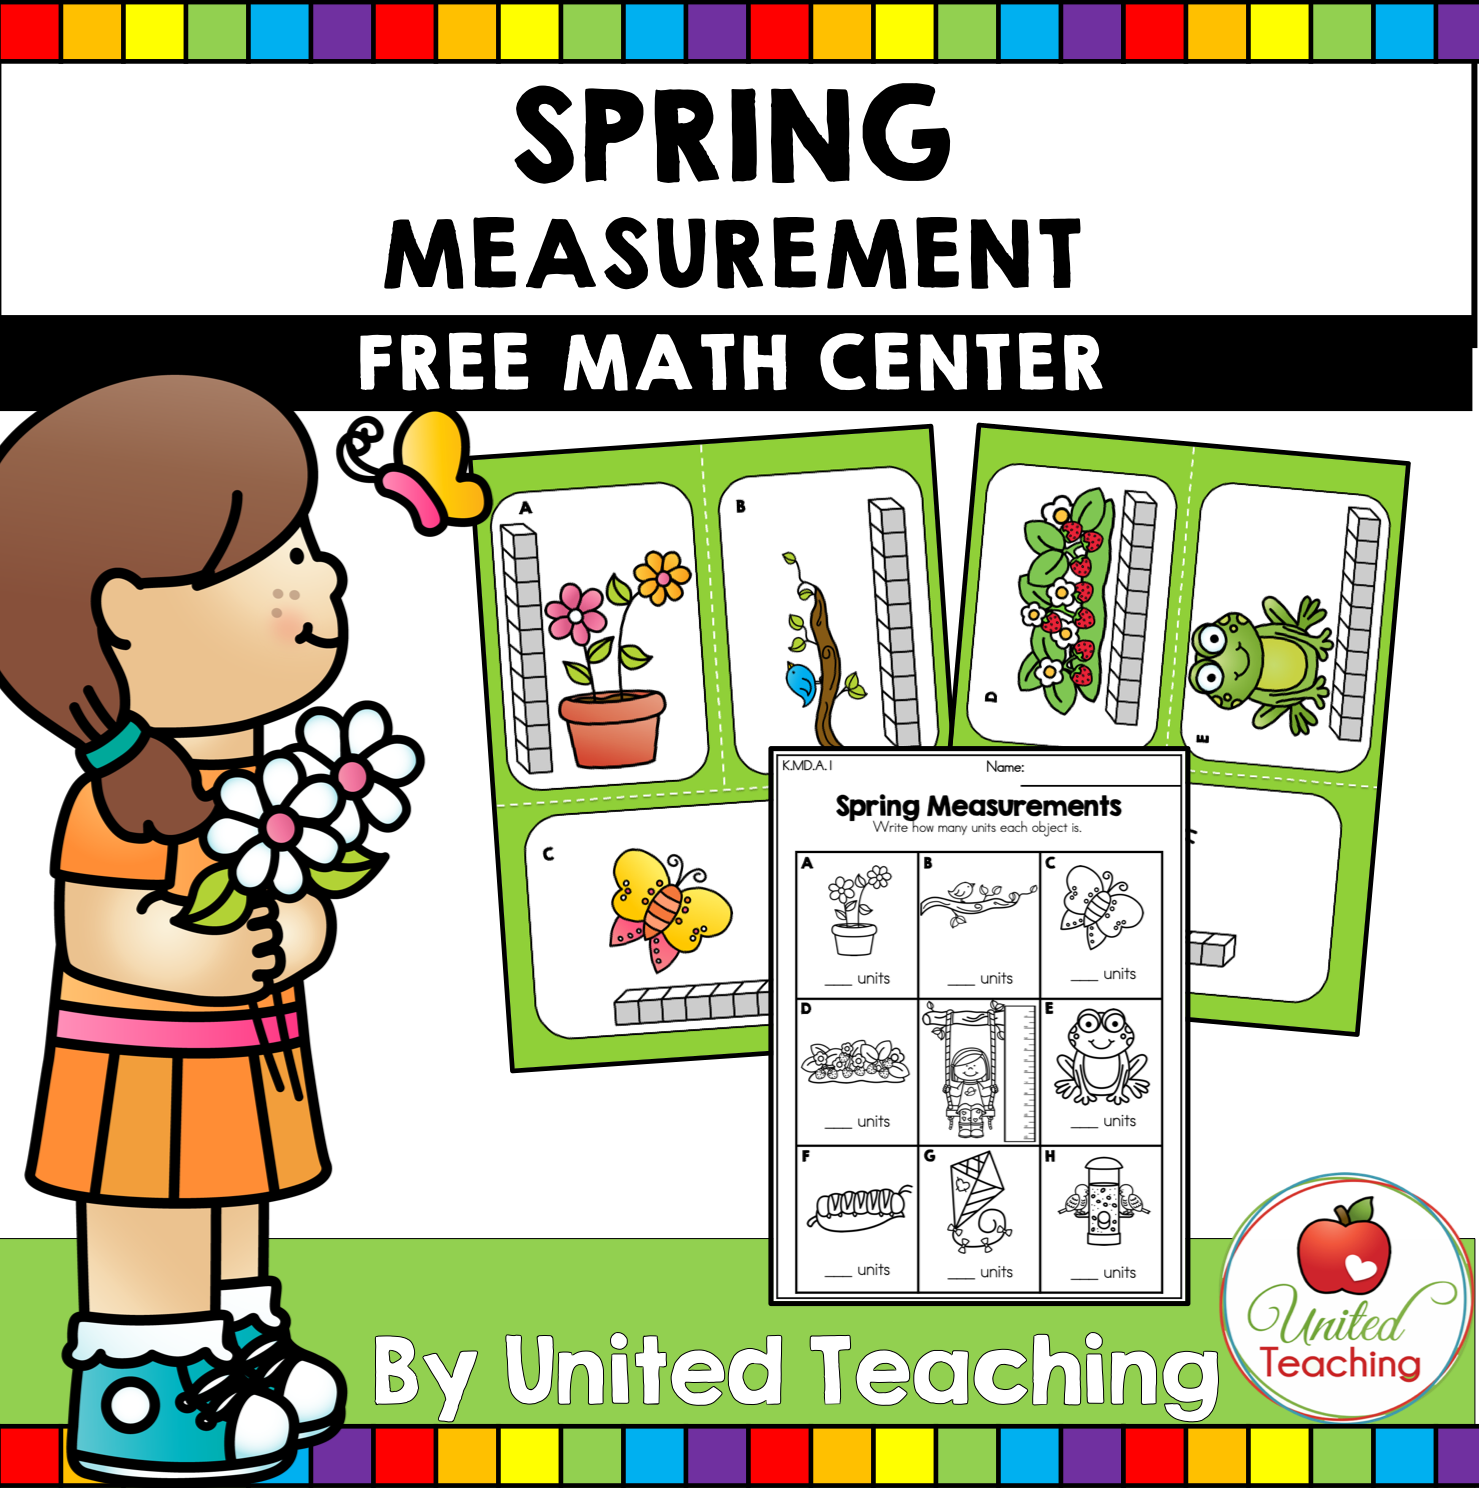 Spring Measurement Math Center Free In